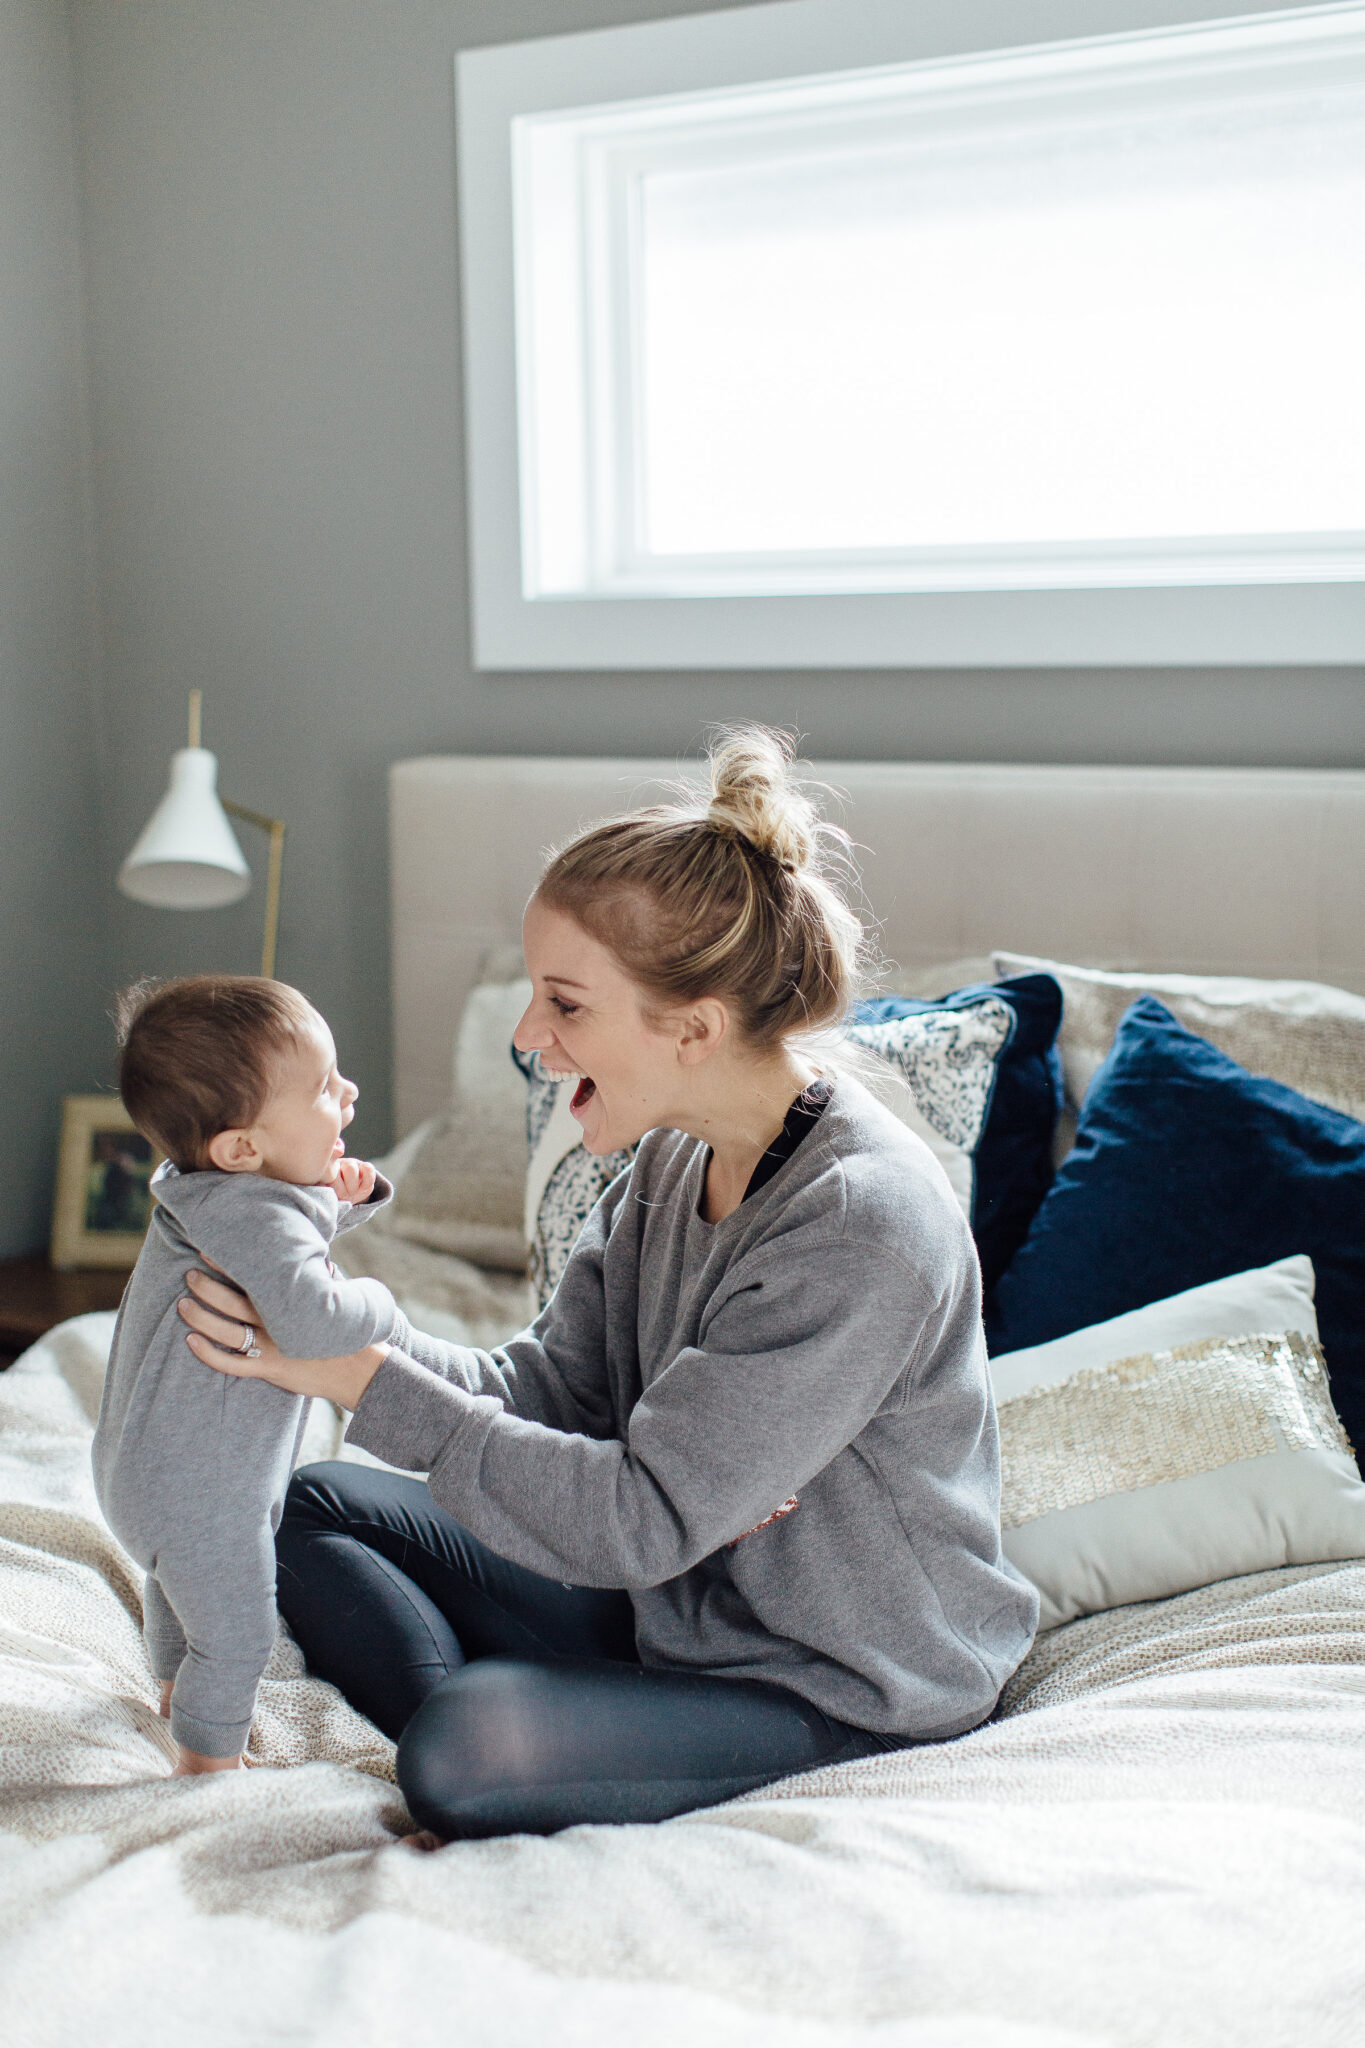 first time mom tips - Mom and son casual bedroom photo shoot.